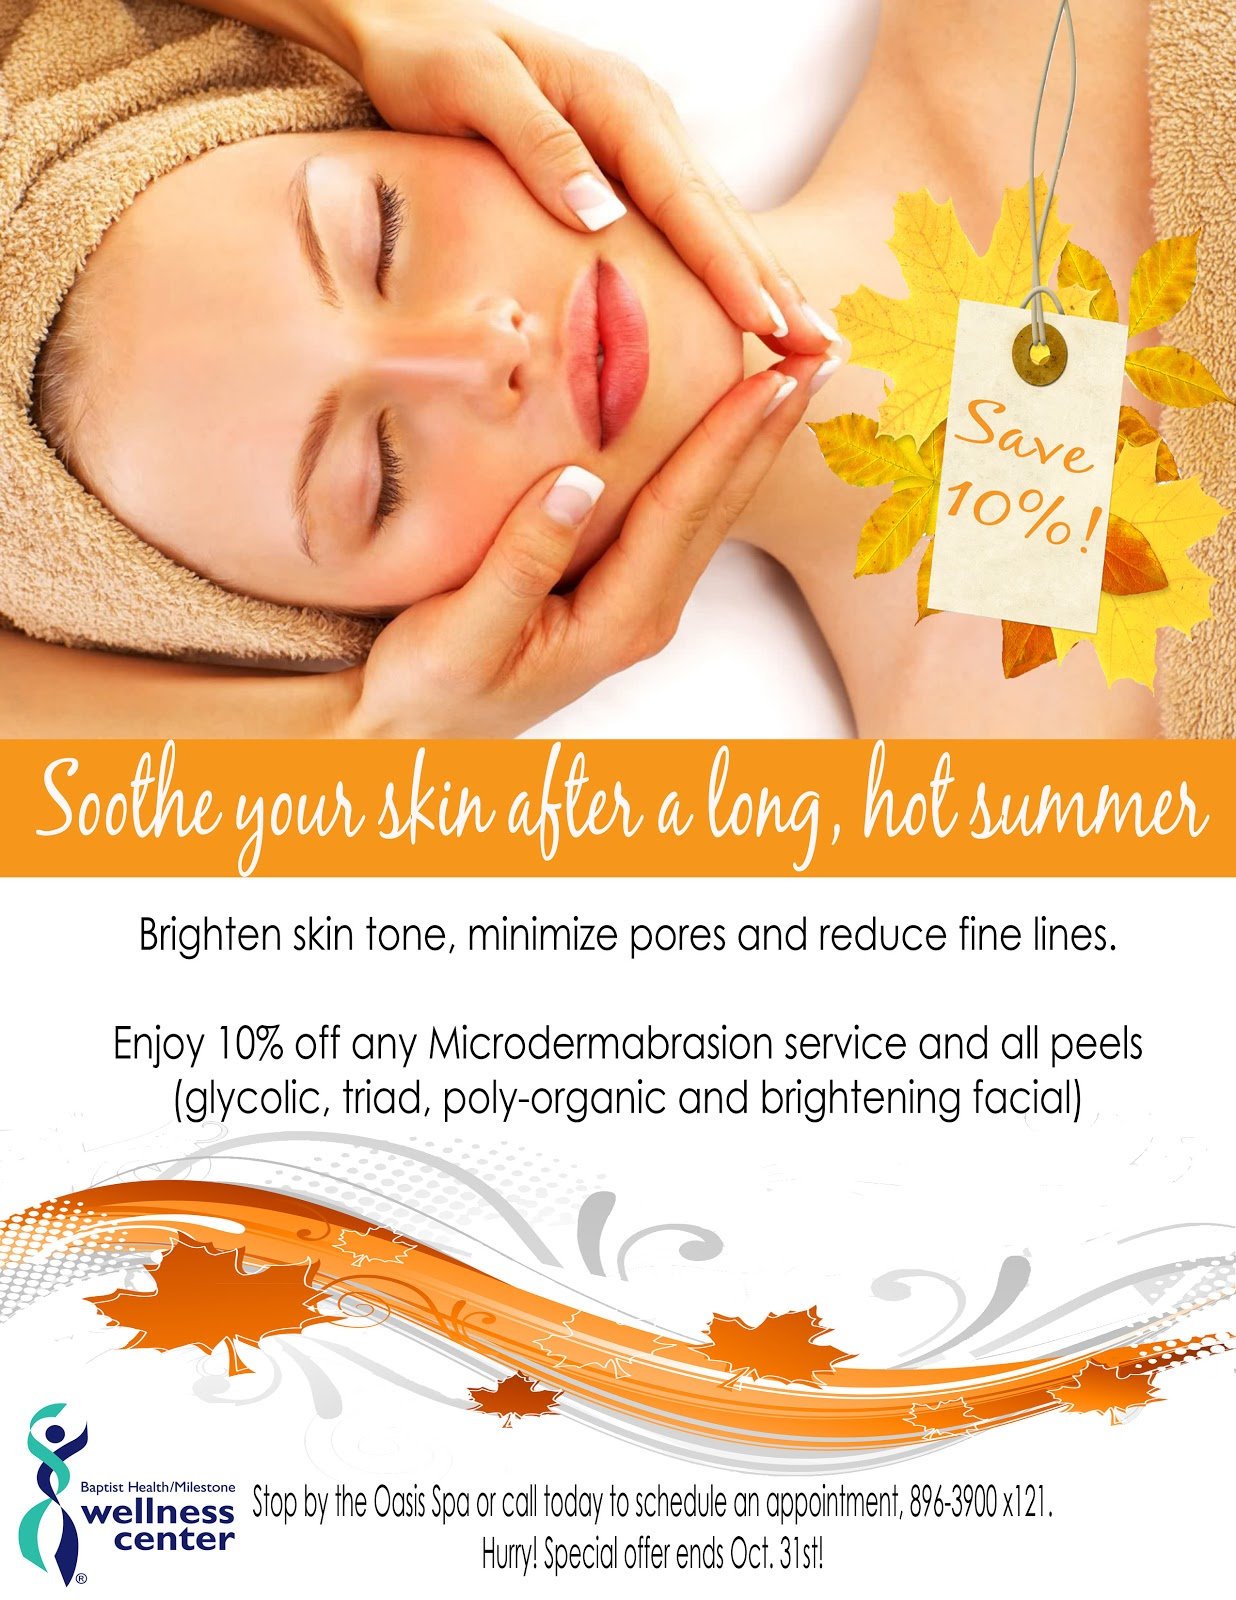 Soothe your skin after a long, hot summer